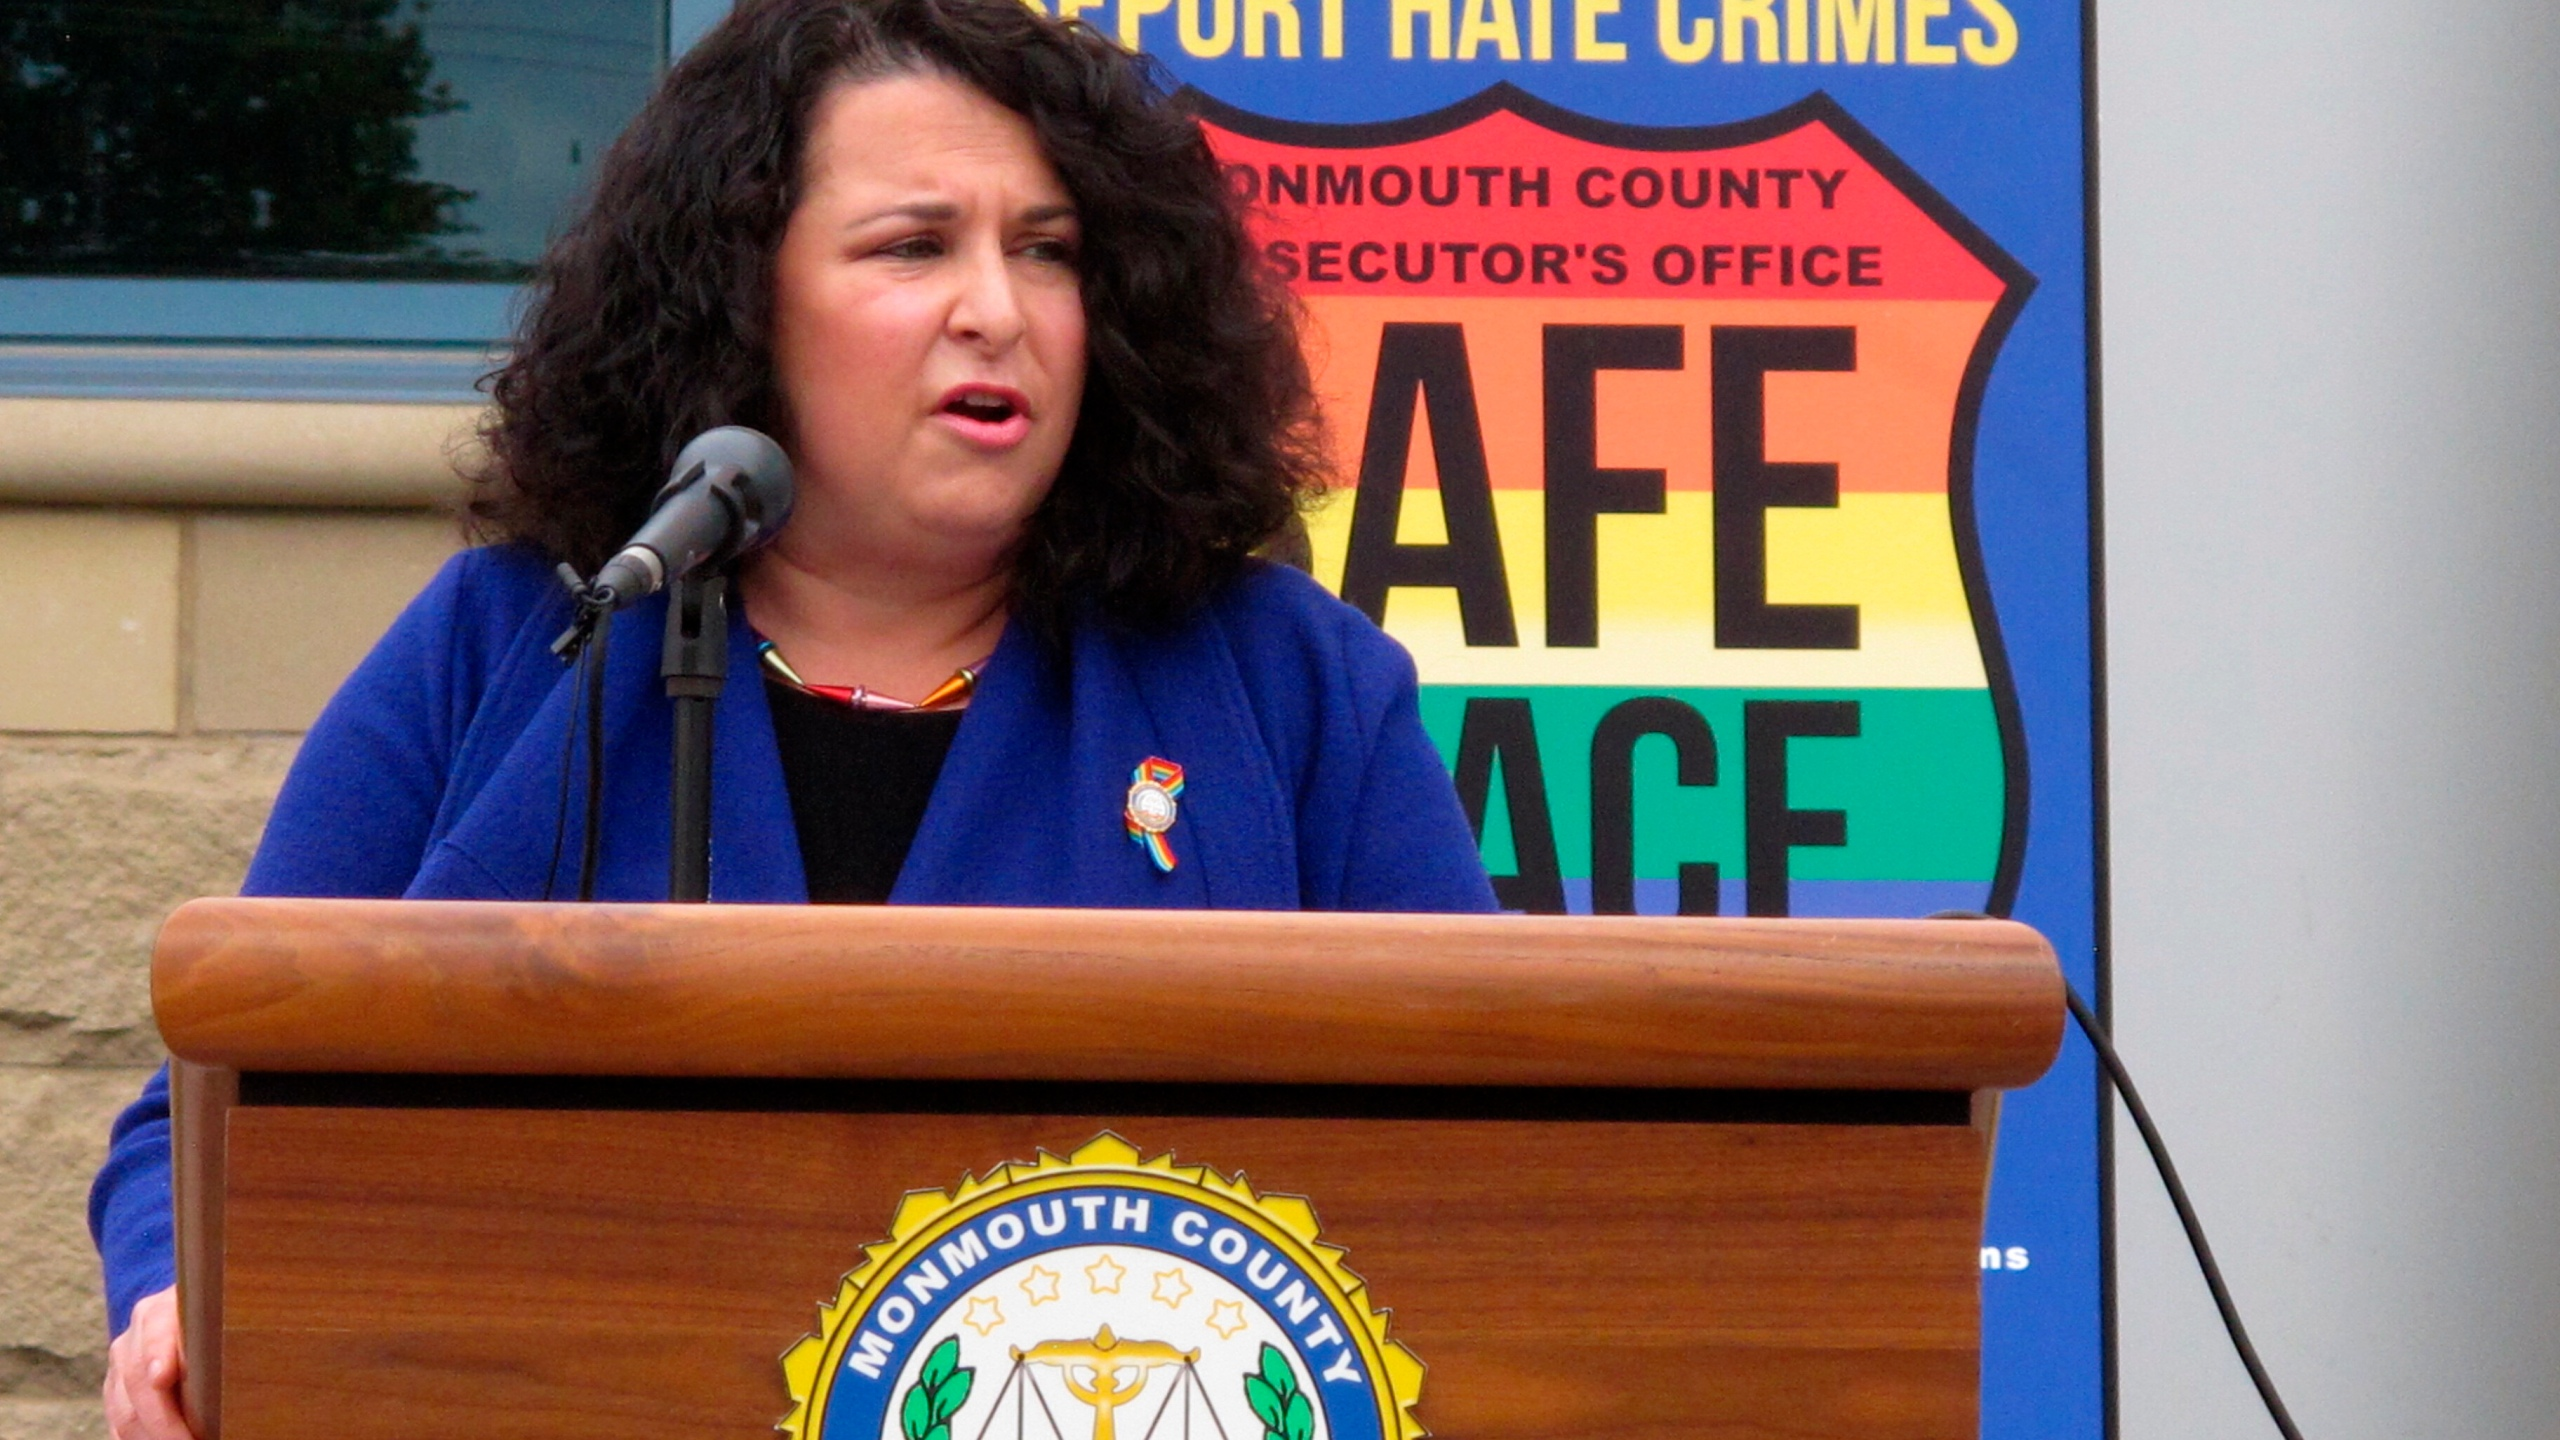 Monmouth County LGBTQ outreach efforts